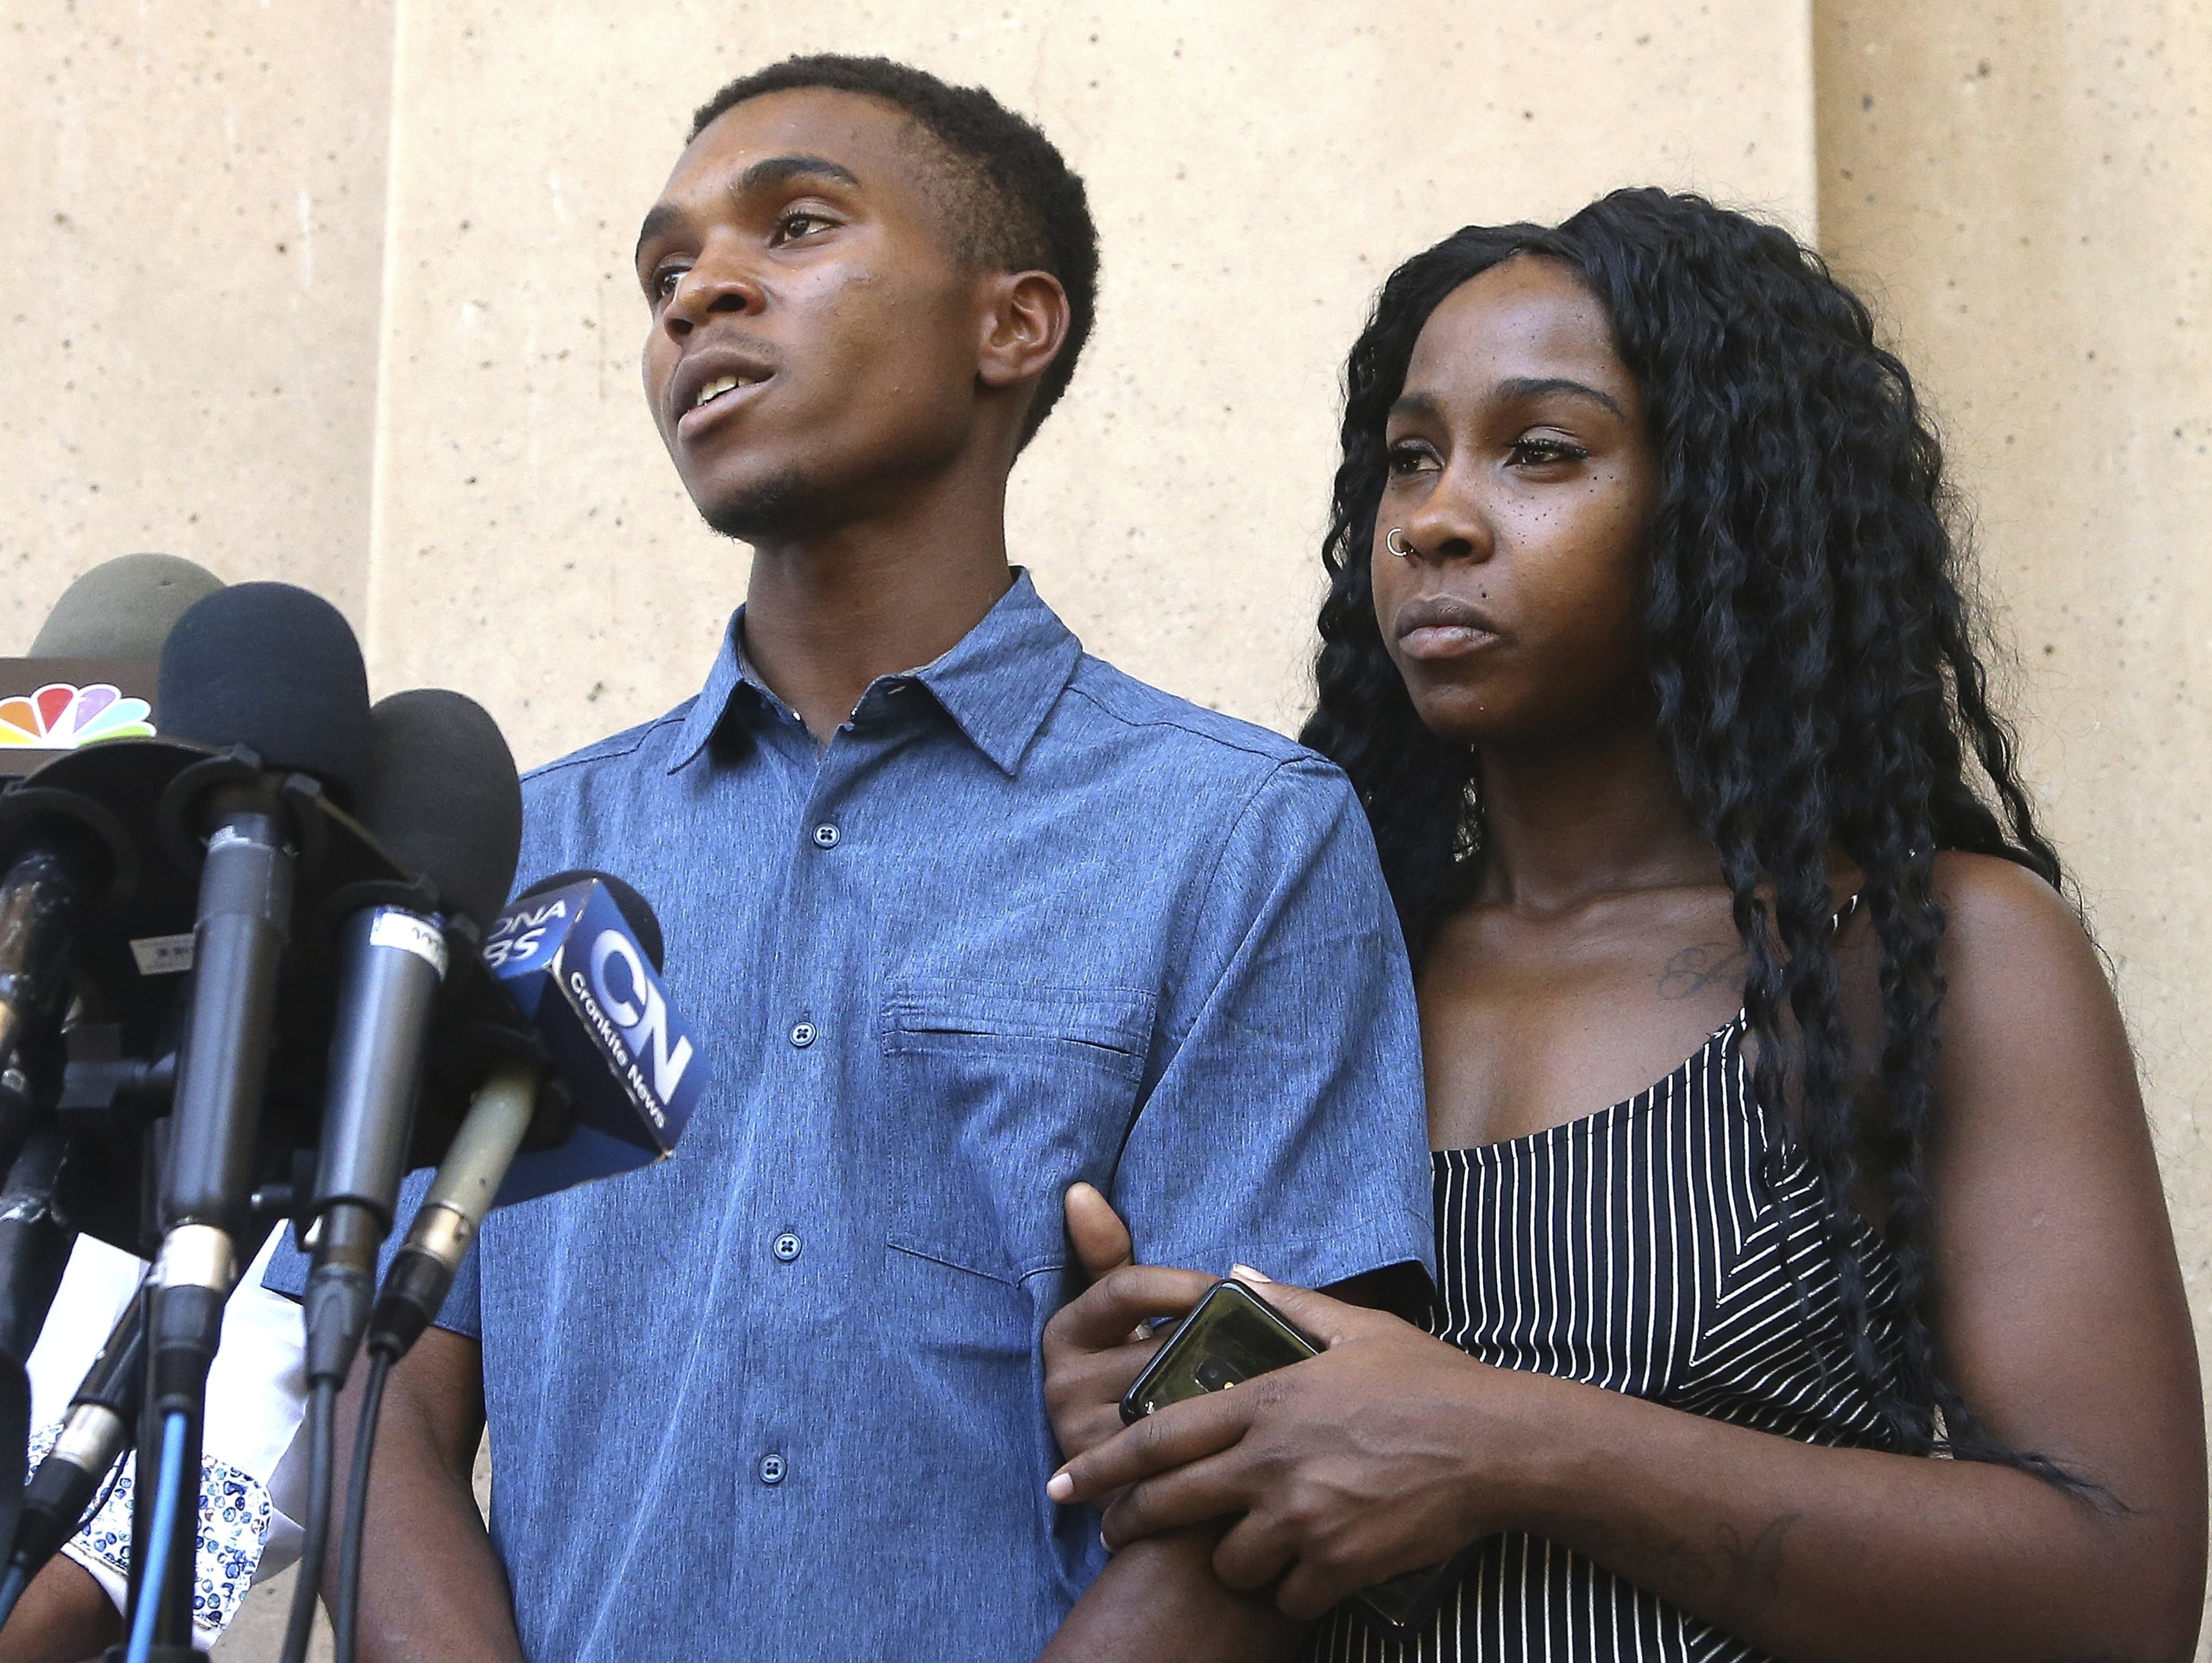 Phoenix family who had guns pulled on them wants police officers fired, not a 'half-apology'